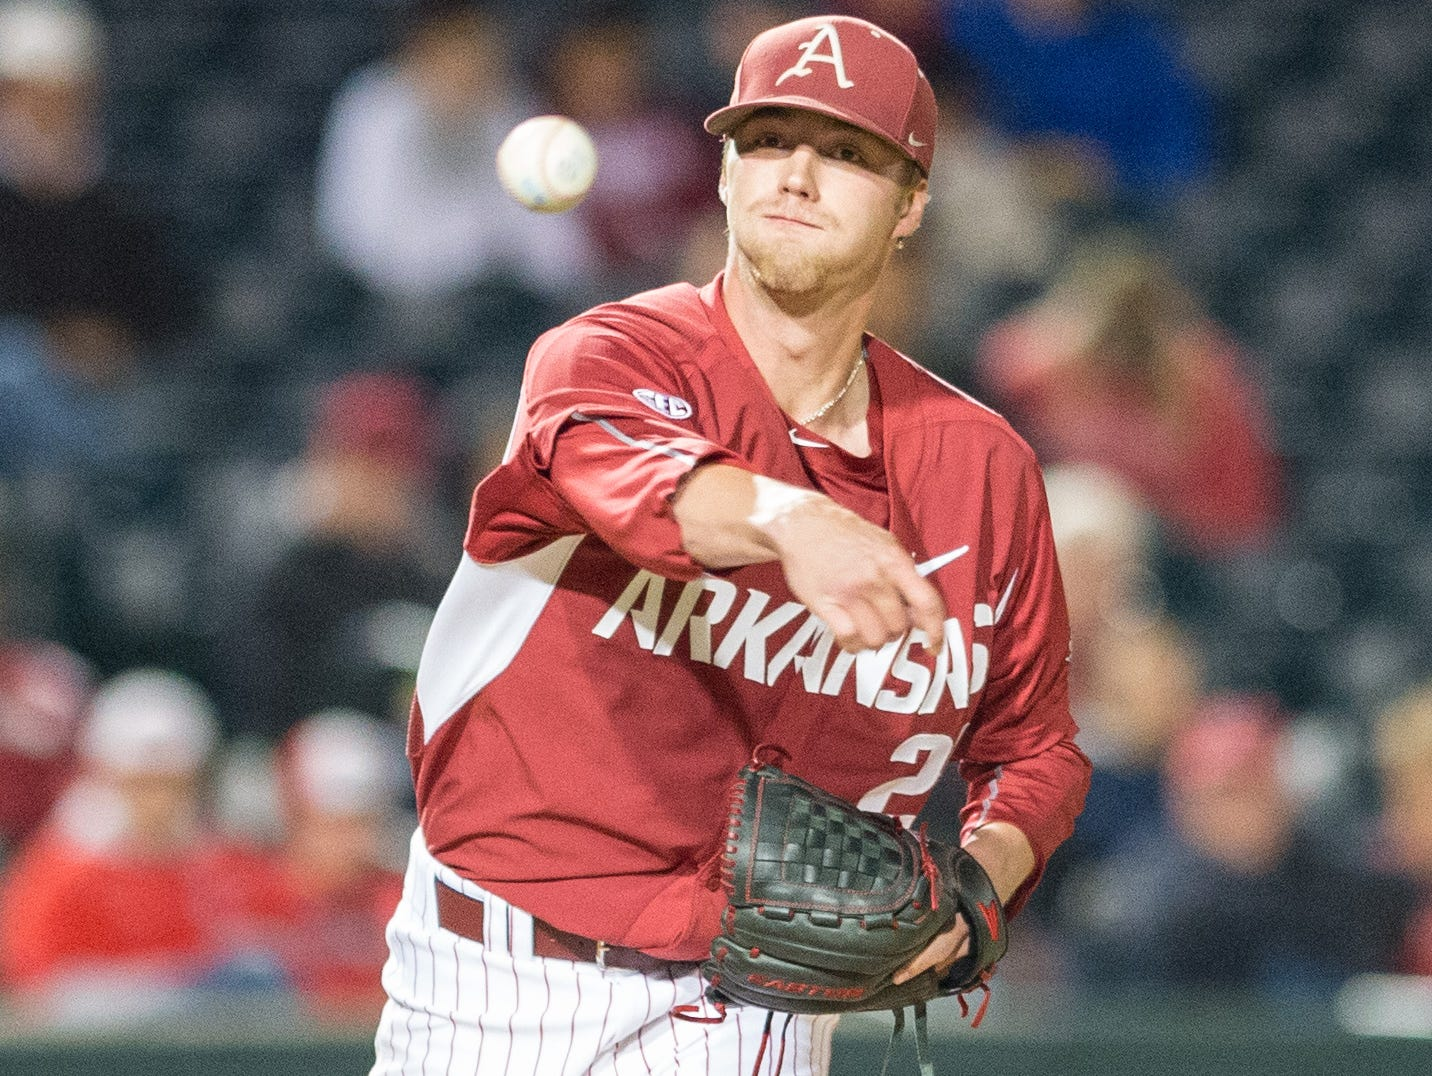 Arkansas pitcher Trey Killian throws to first on a pickoff attempt during a recent game at Baum Stadium. Killian will start Friday for the Razorbacks, who face Tennessee this weekend in their final home regular-season series.